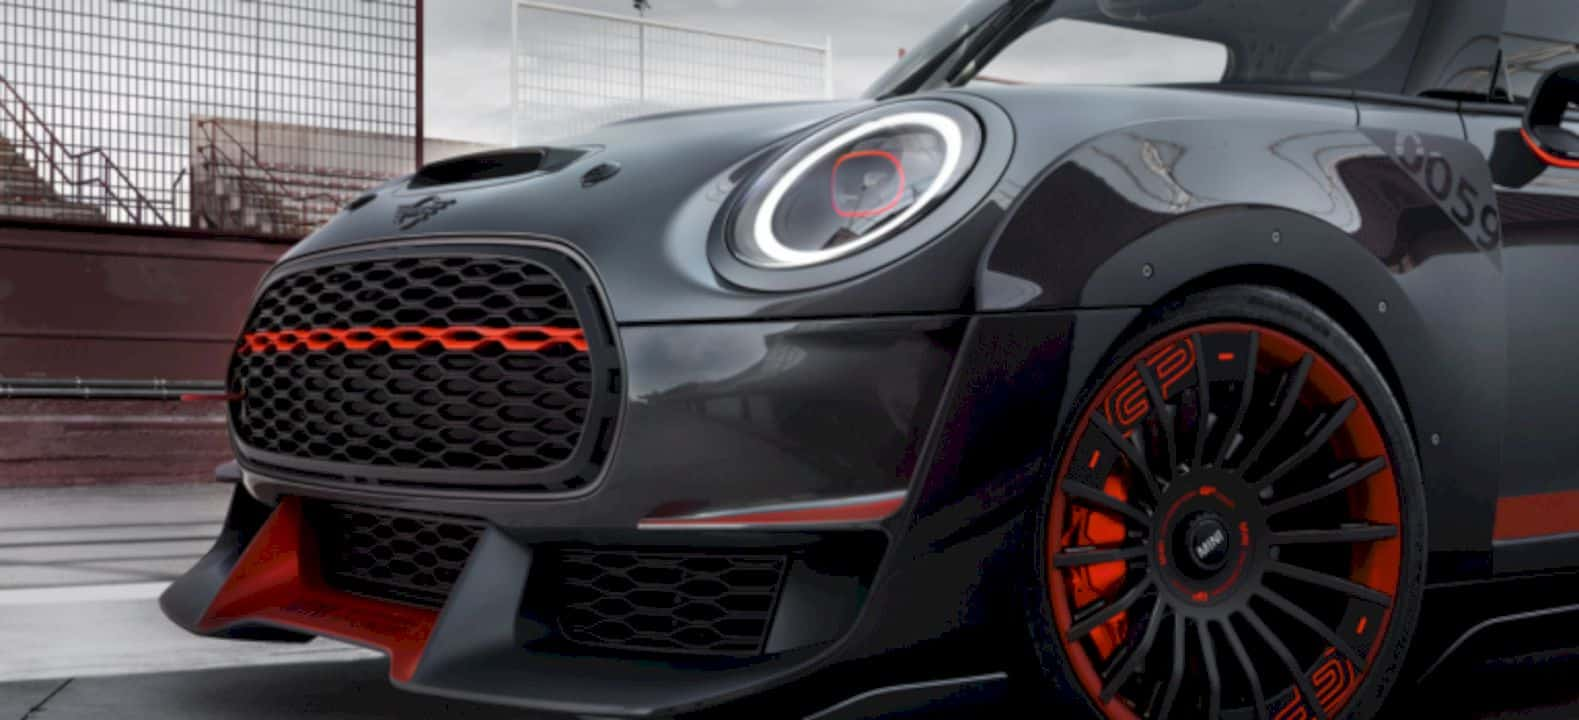 The Mini John Cooper Works Gp Concept 5